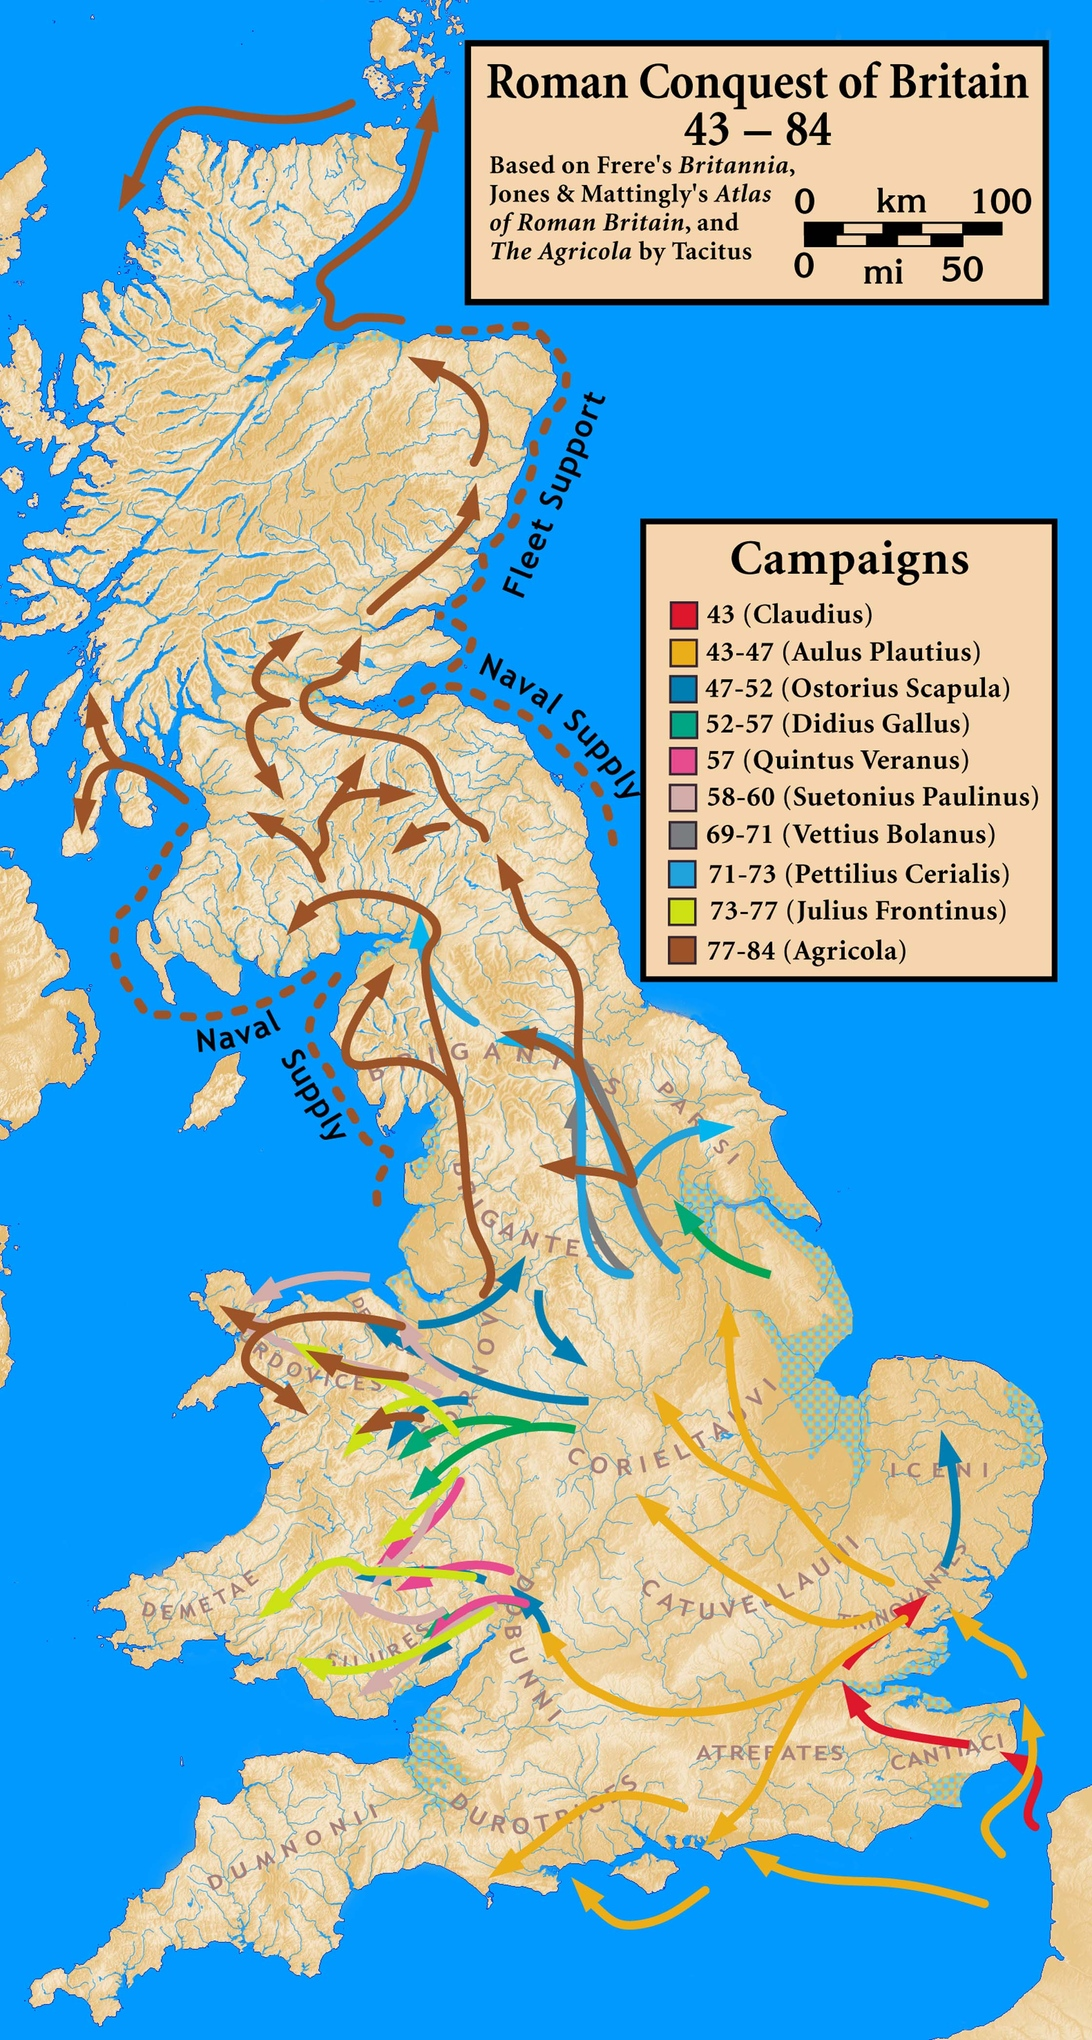 the invasion of britain by the roman army under emperor claudius The roman invasion of britain was a determined military and political effort to  project  the romans, under the emperor claudius, were ready to conquer  britain.